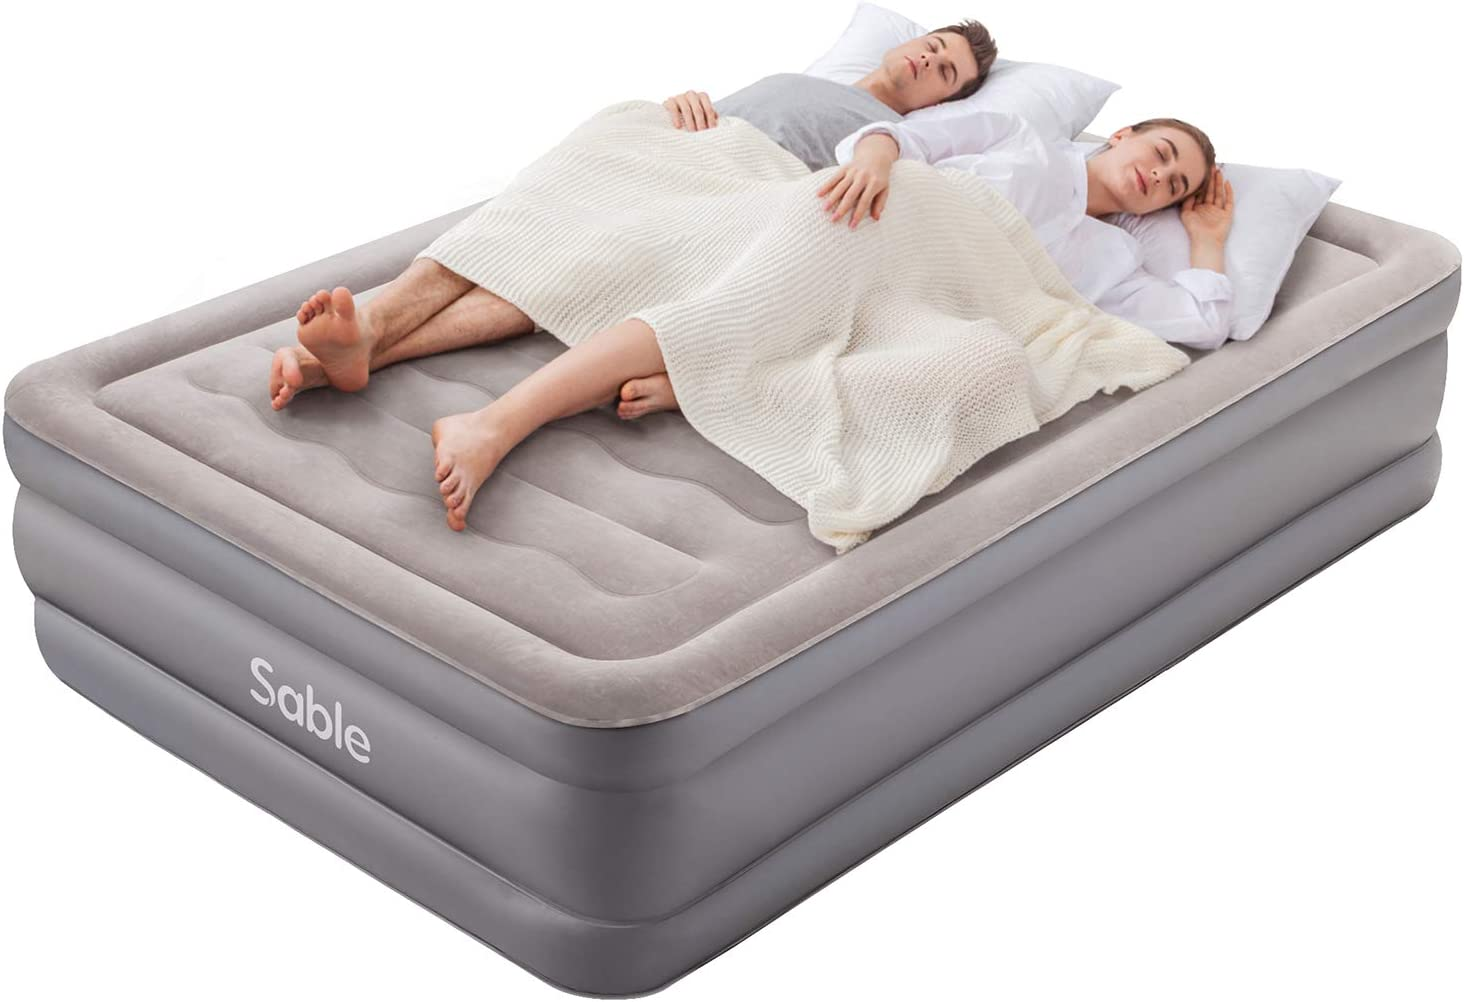 Air Bed Sable Air Mattress Double Size Inflatable Blow Up Bed With Built In Electric Pump Portable Airbeds For Family Guests And Camping Indoor Outdoor 190 X 137 X 46 Cm Amazon Co Uk